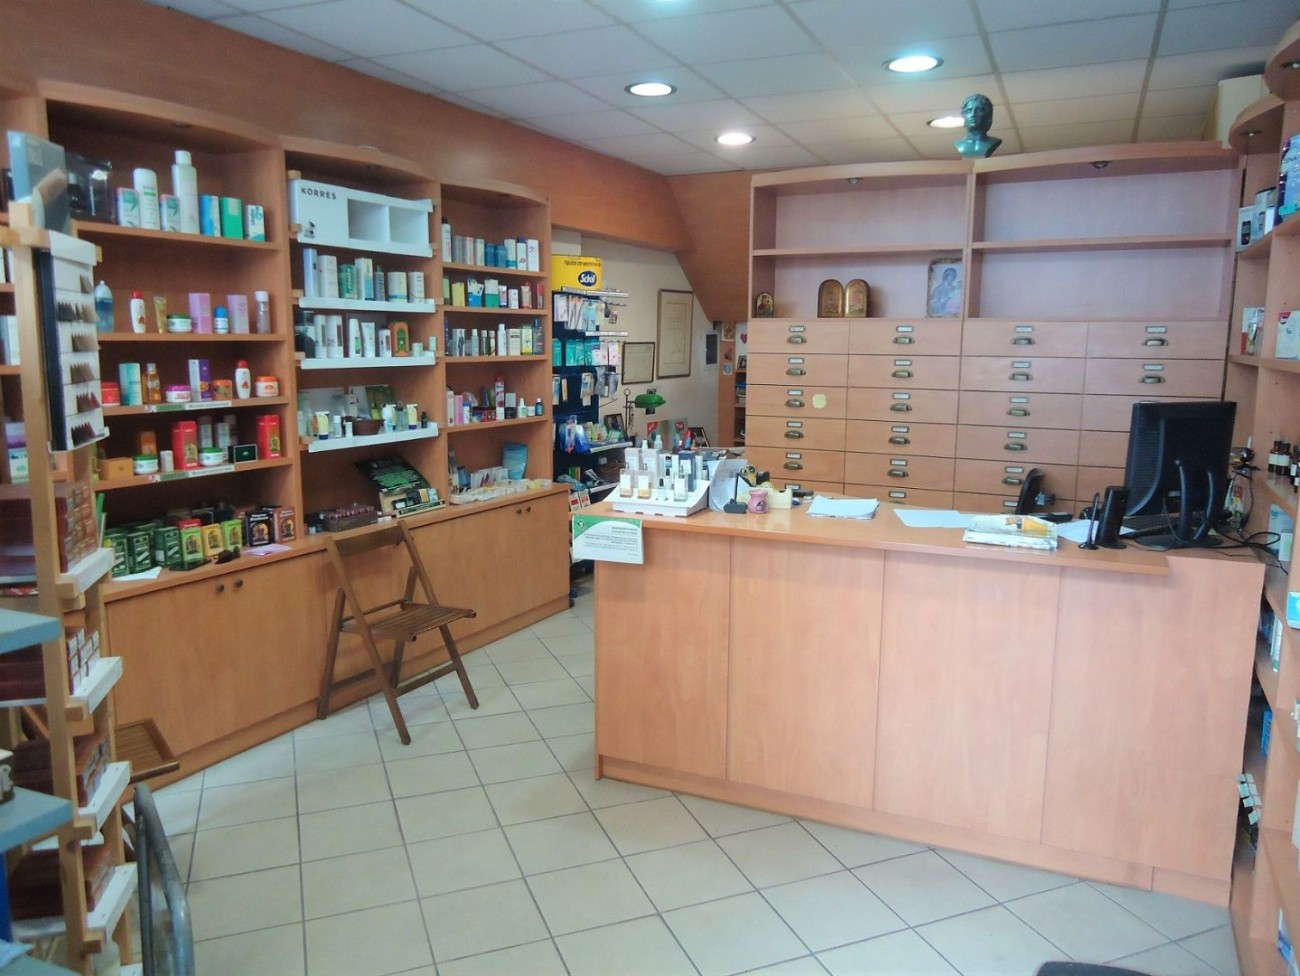 Shop for Rent in Gyzi, Athens City Center, Greece